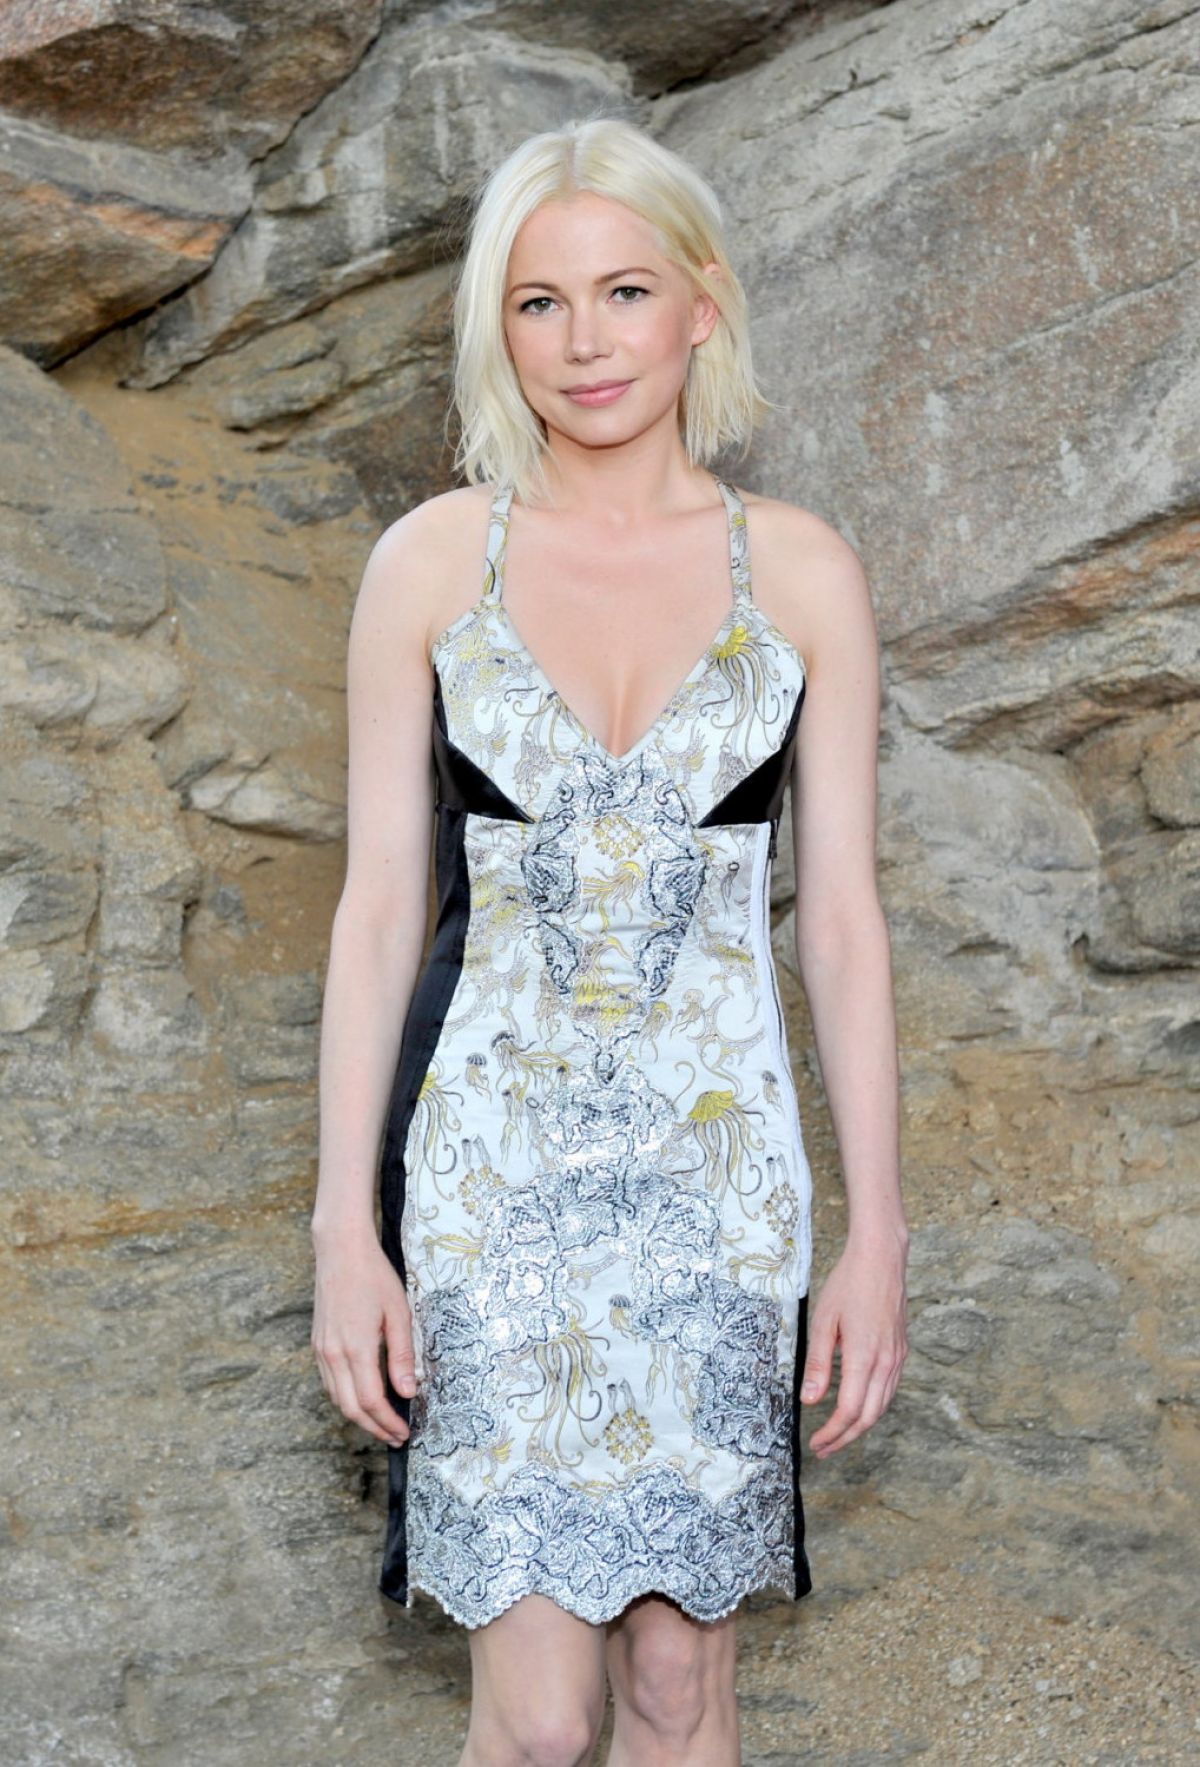 michelle williams - photo #14